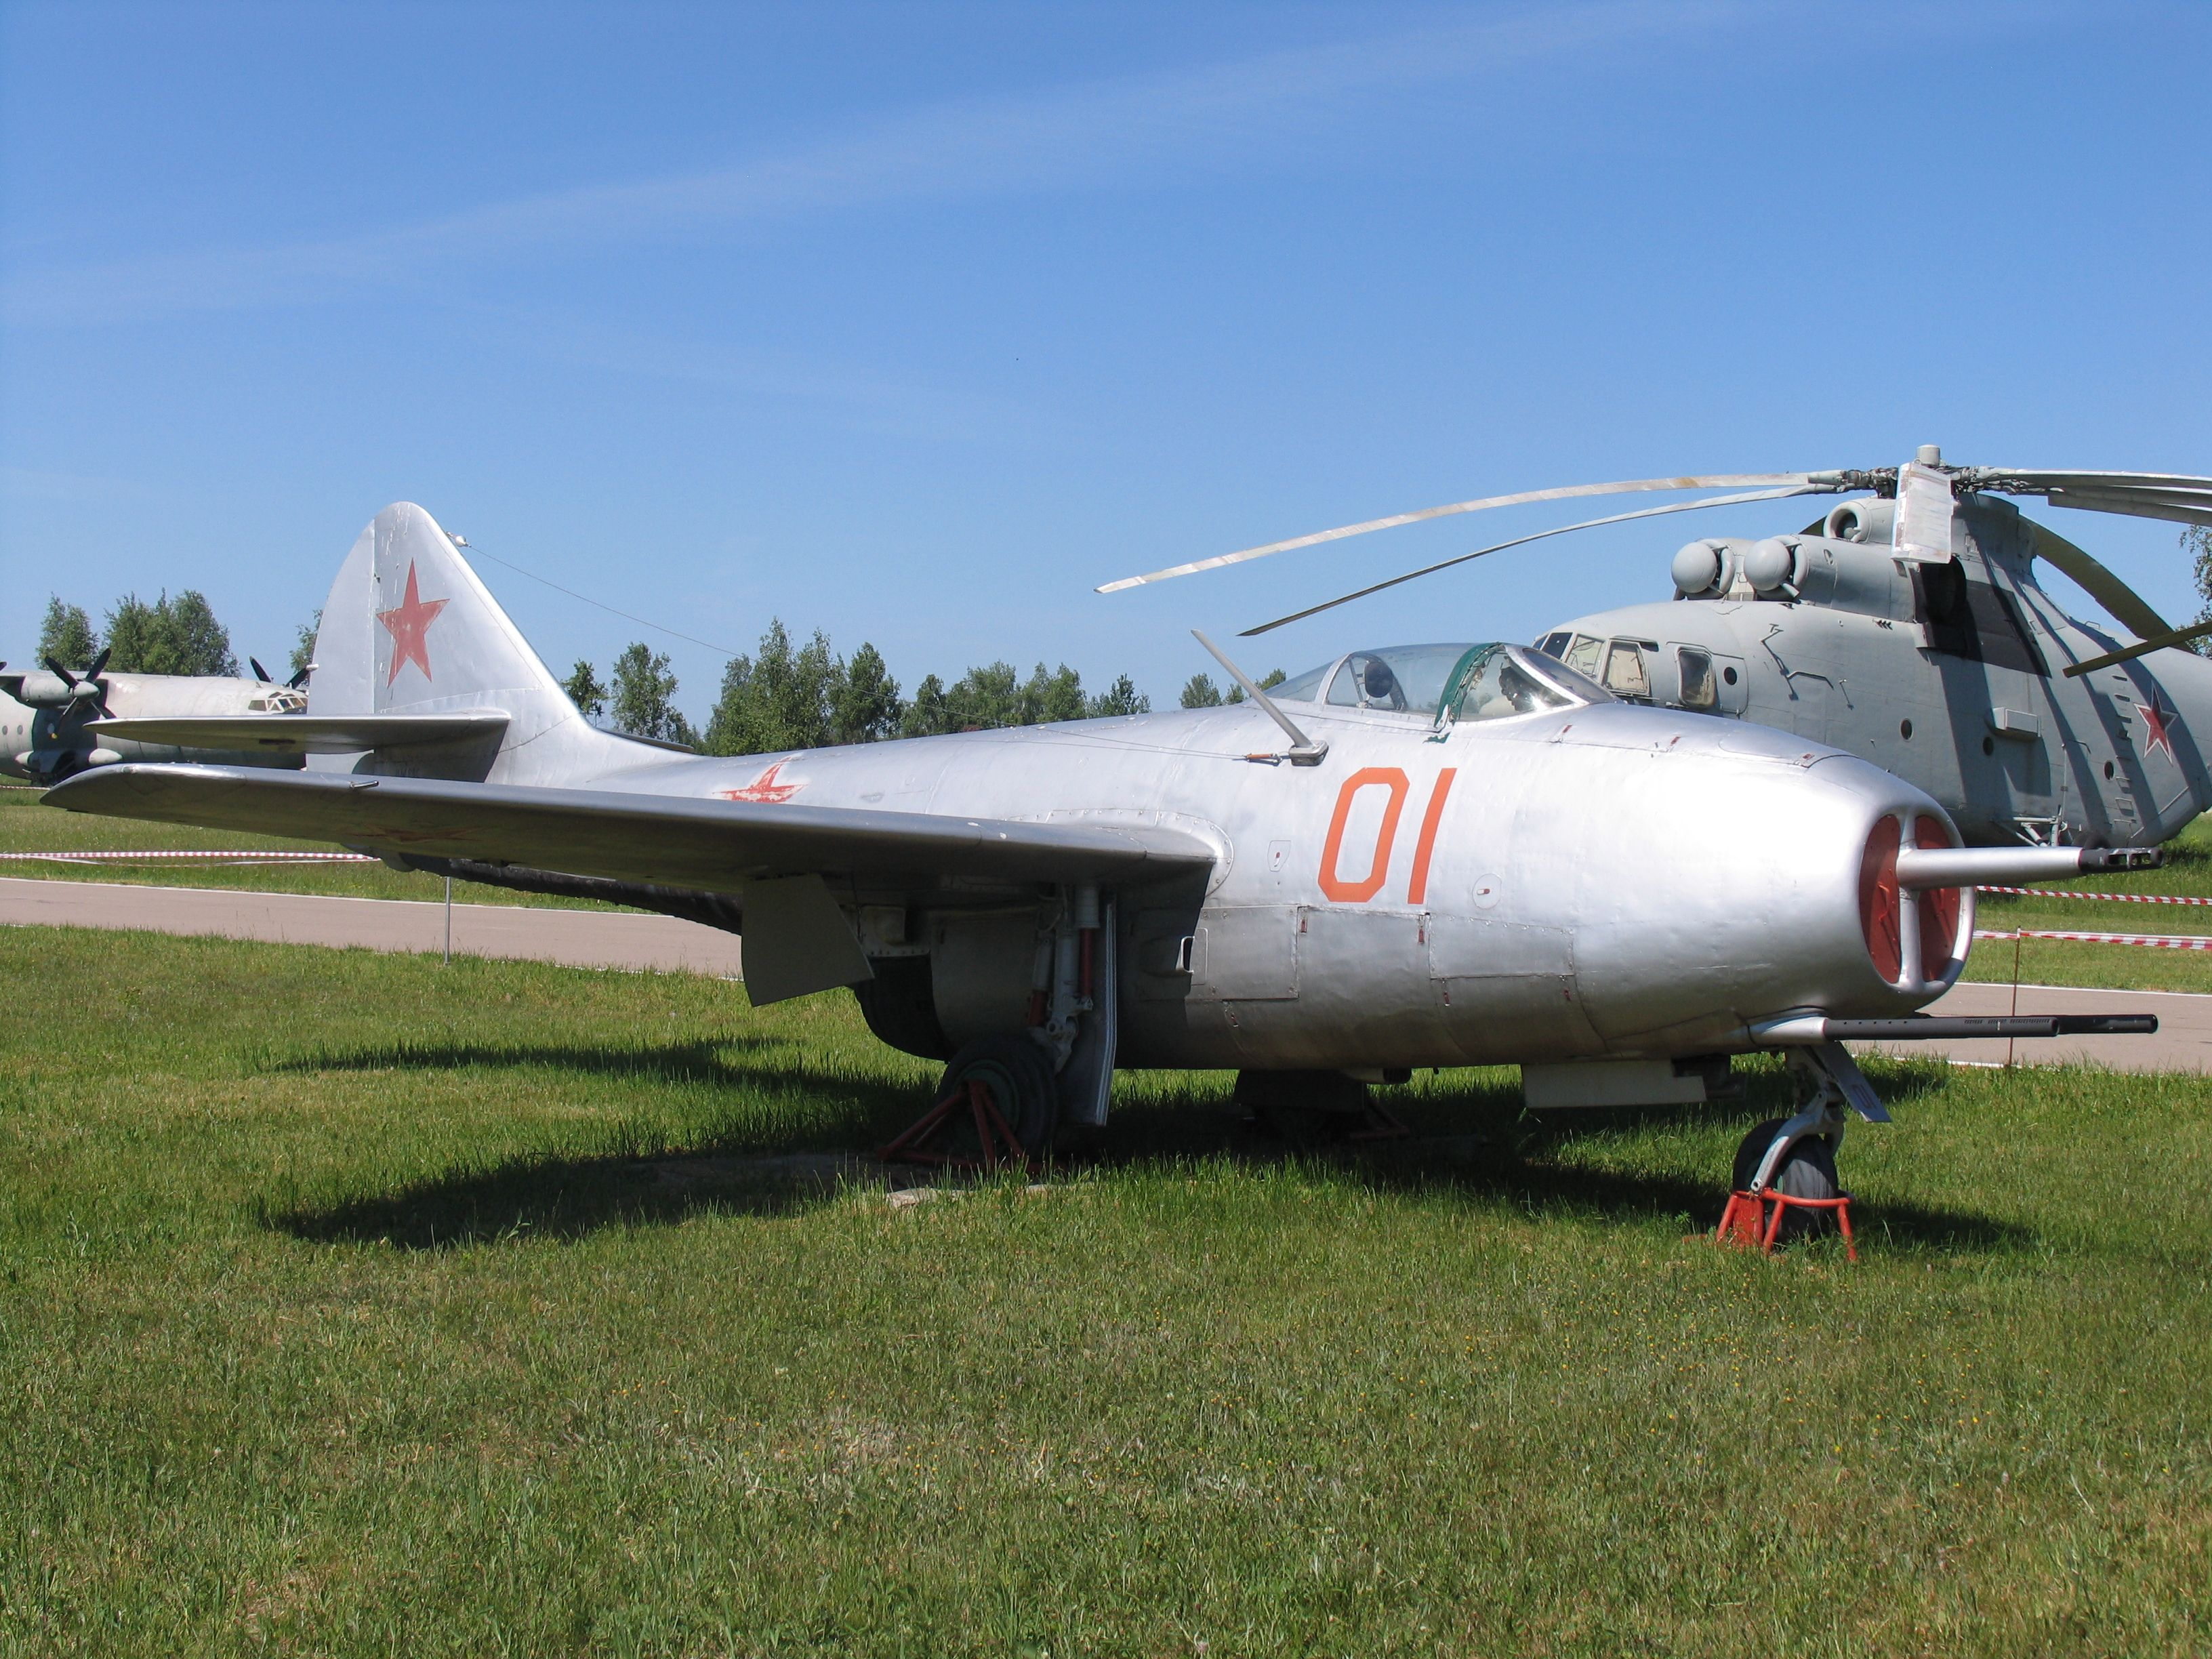 The Mig-15 Was The Soviet Union's Revolutionary Fighter Jet